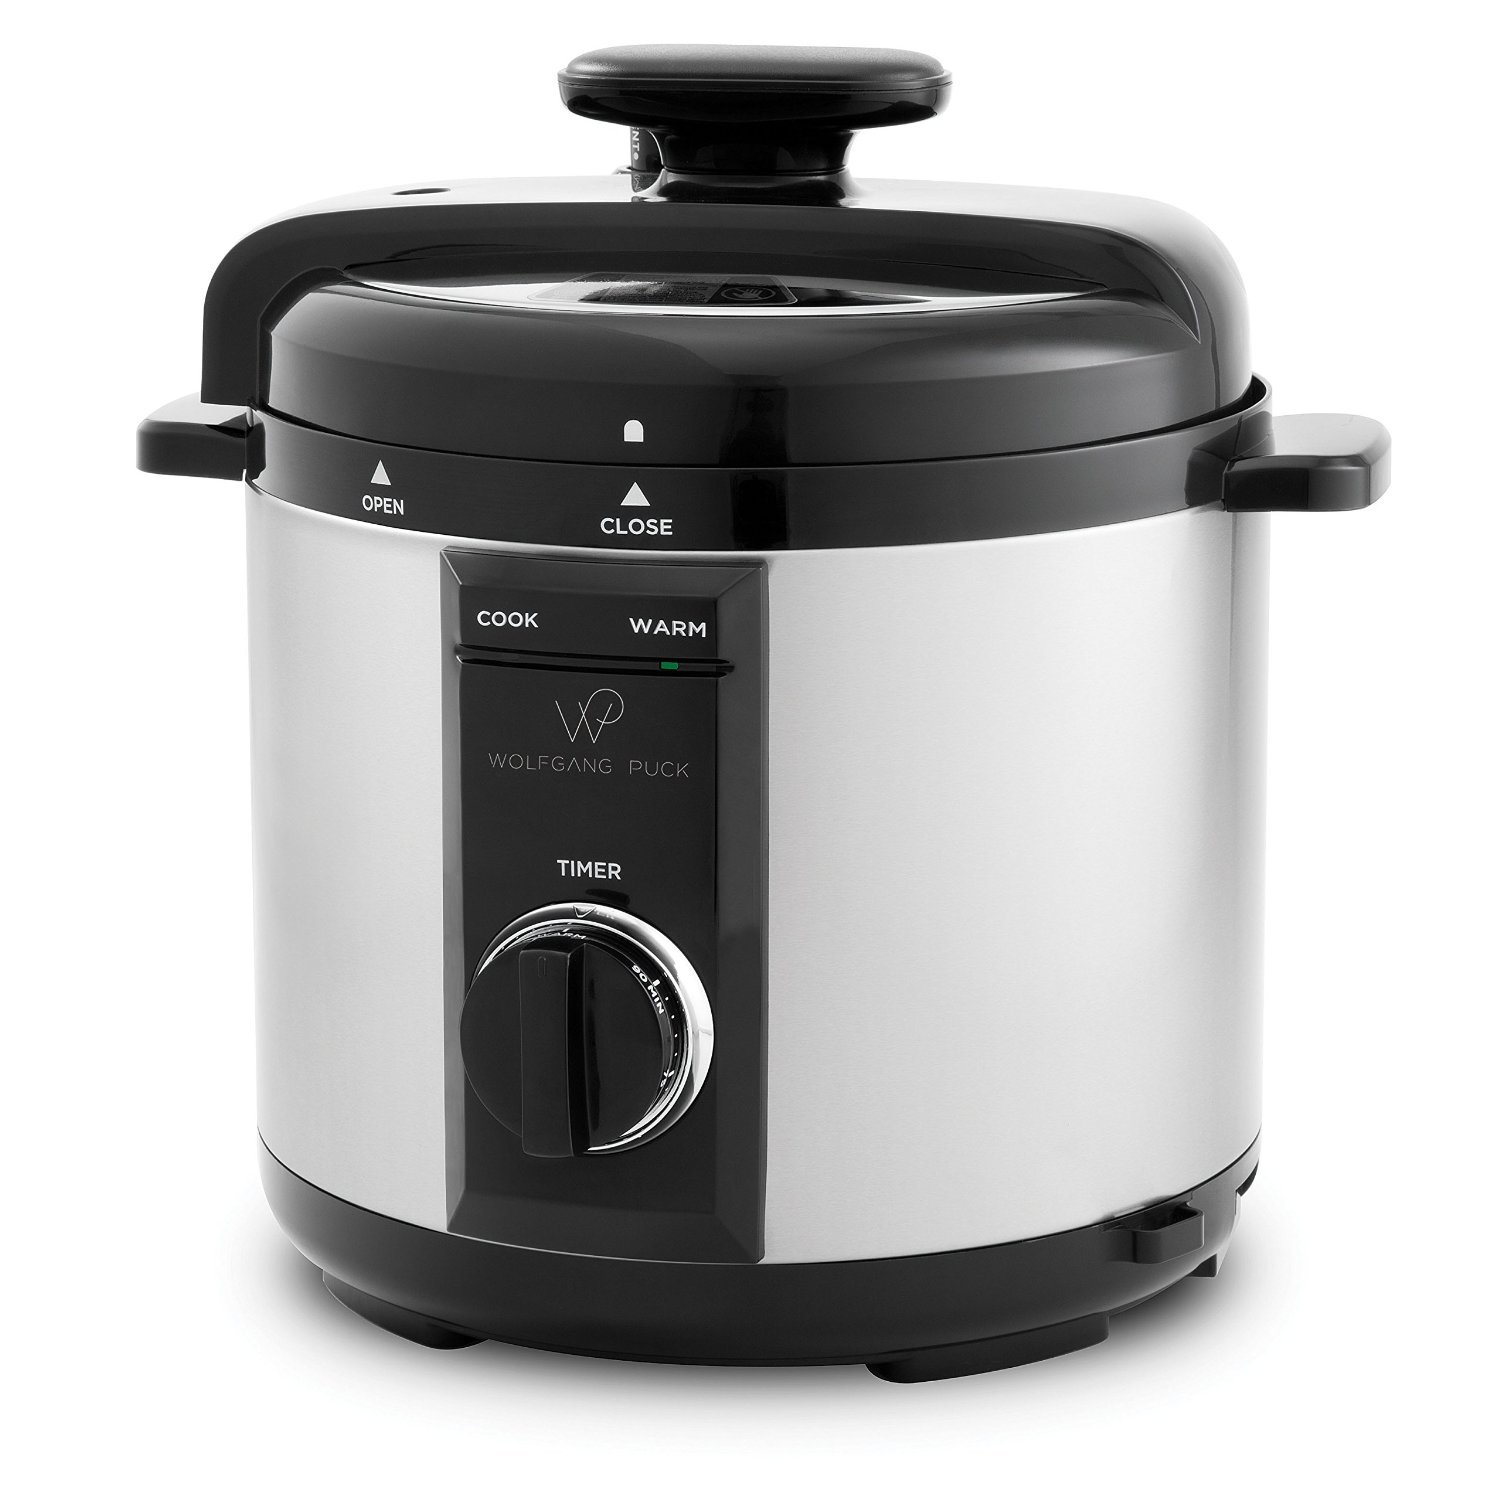 Wolfgang Puck Automatic Pressure Cooker with Removable 8 Quart Pot, 1200-Watt Cook and Sear WPPCRM800